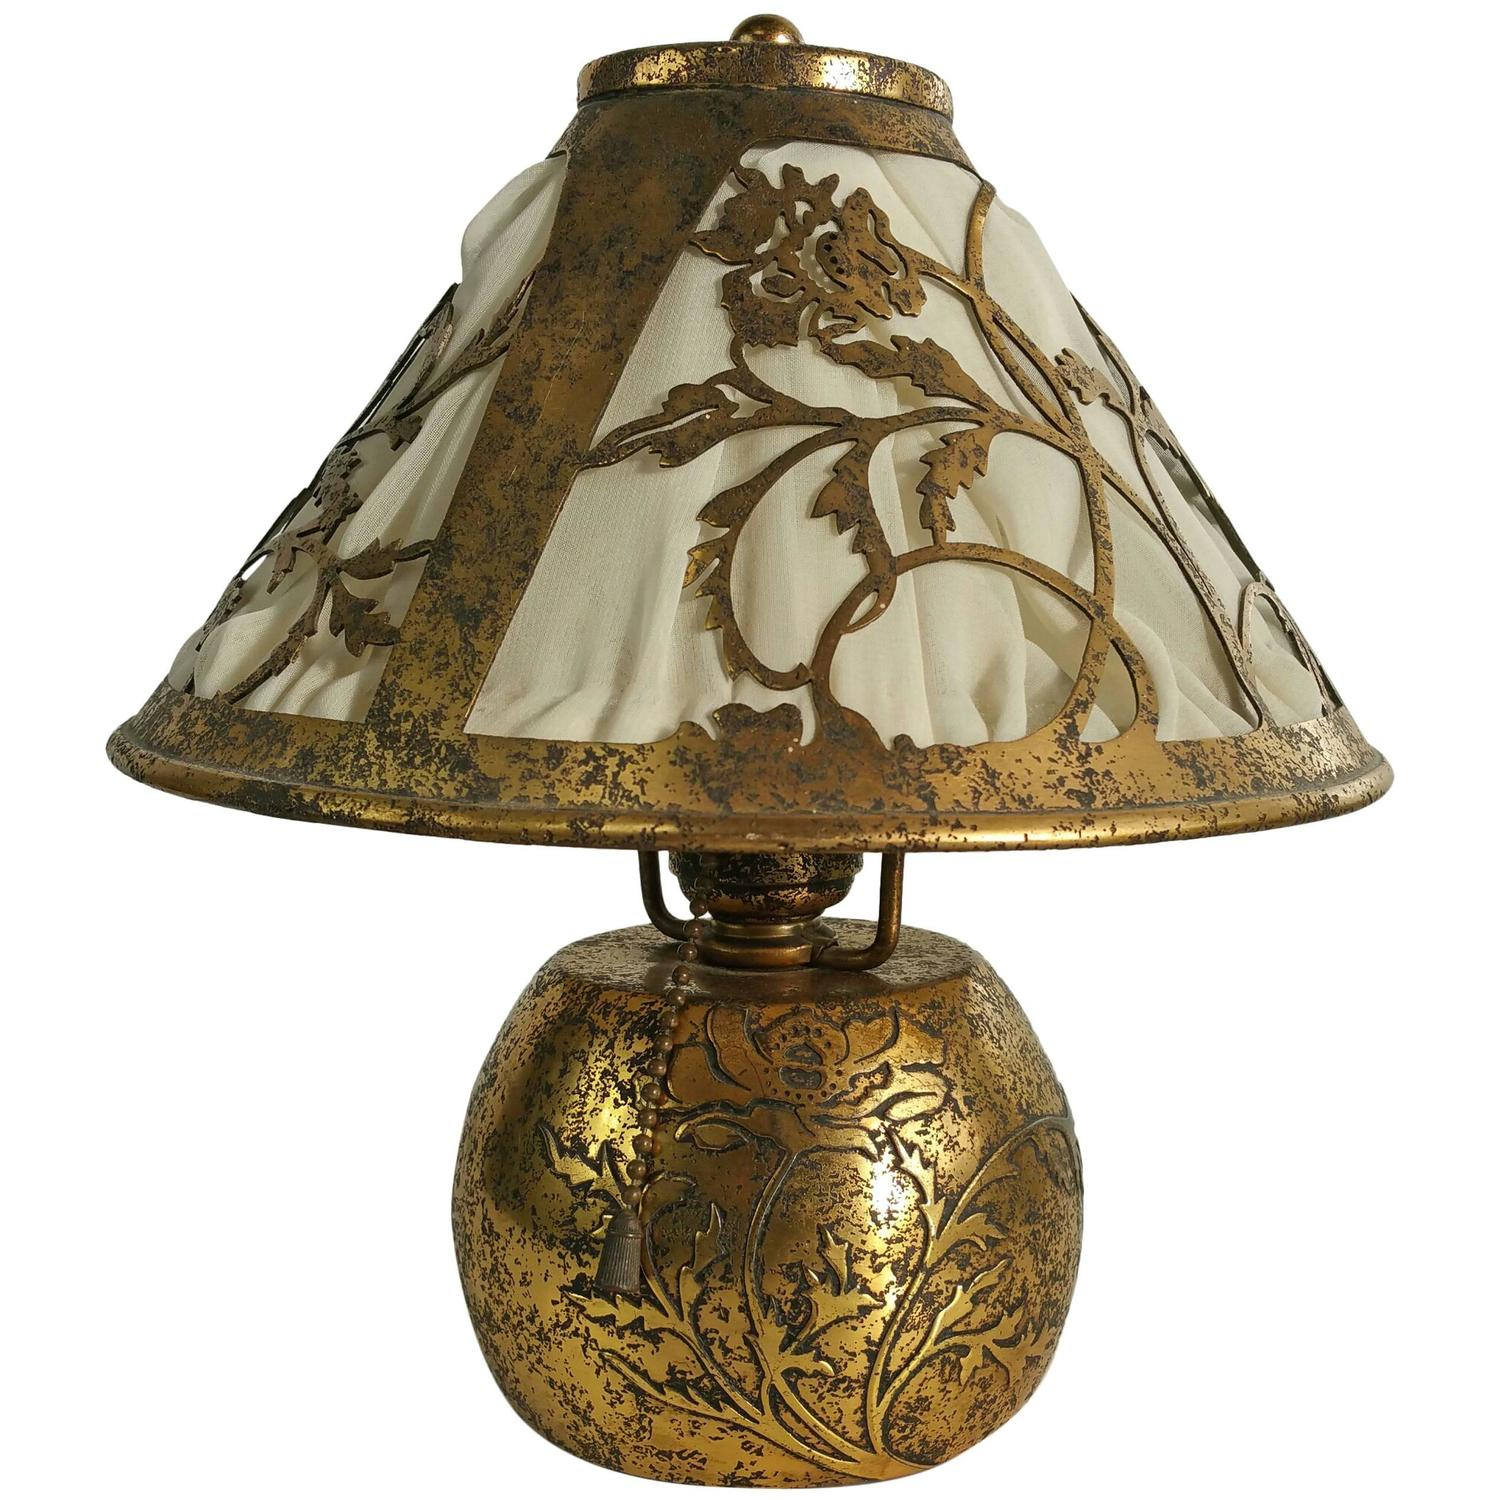 Classic Arts and Crafts Boudoir Lamp, Silver over Bronze, by ...